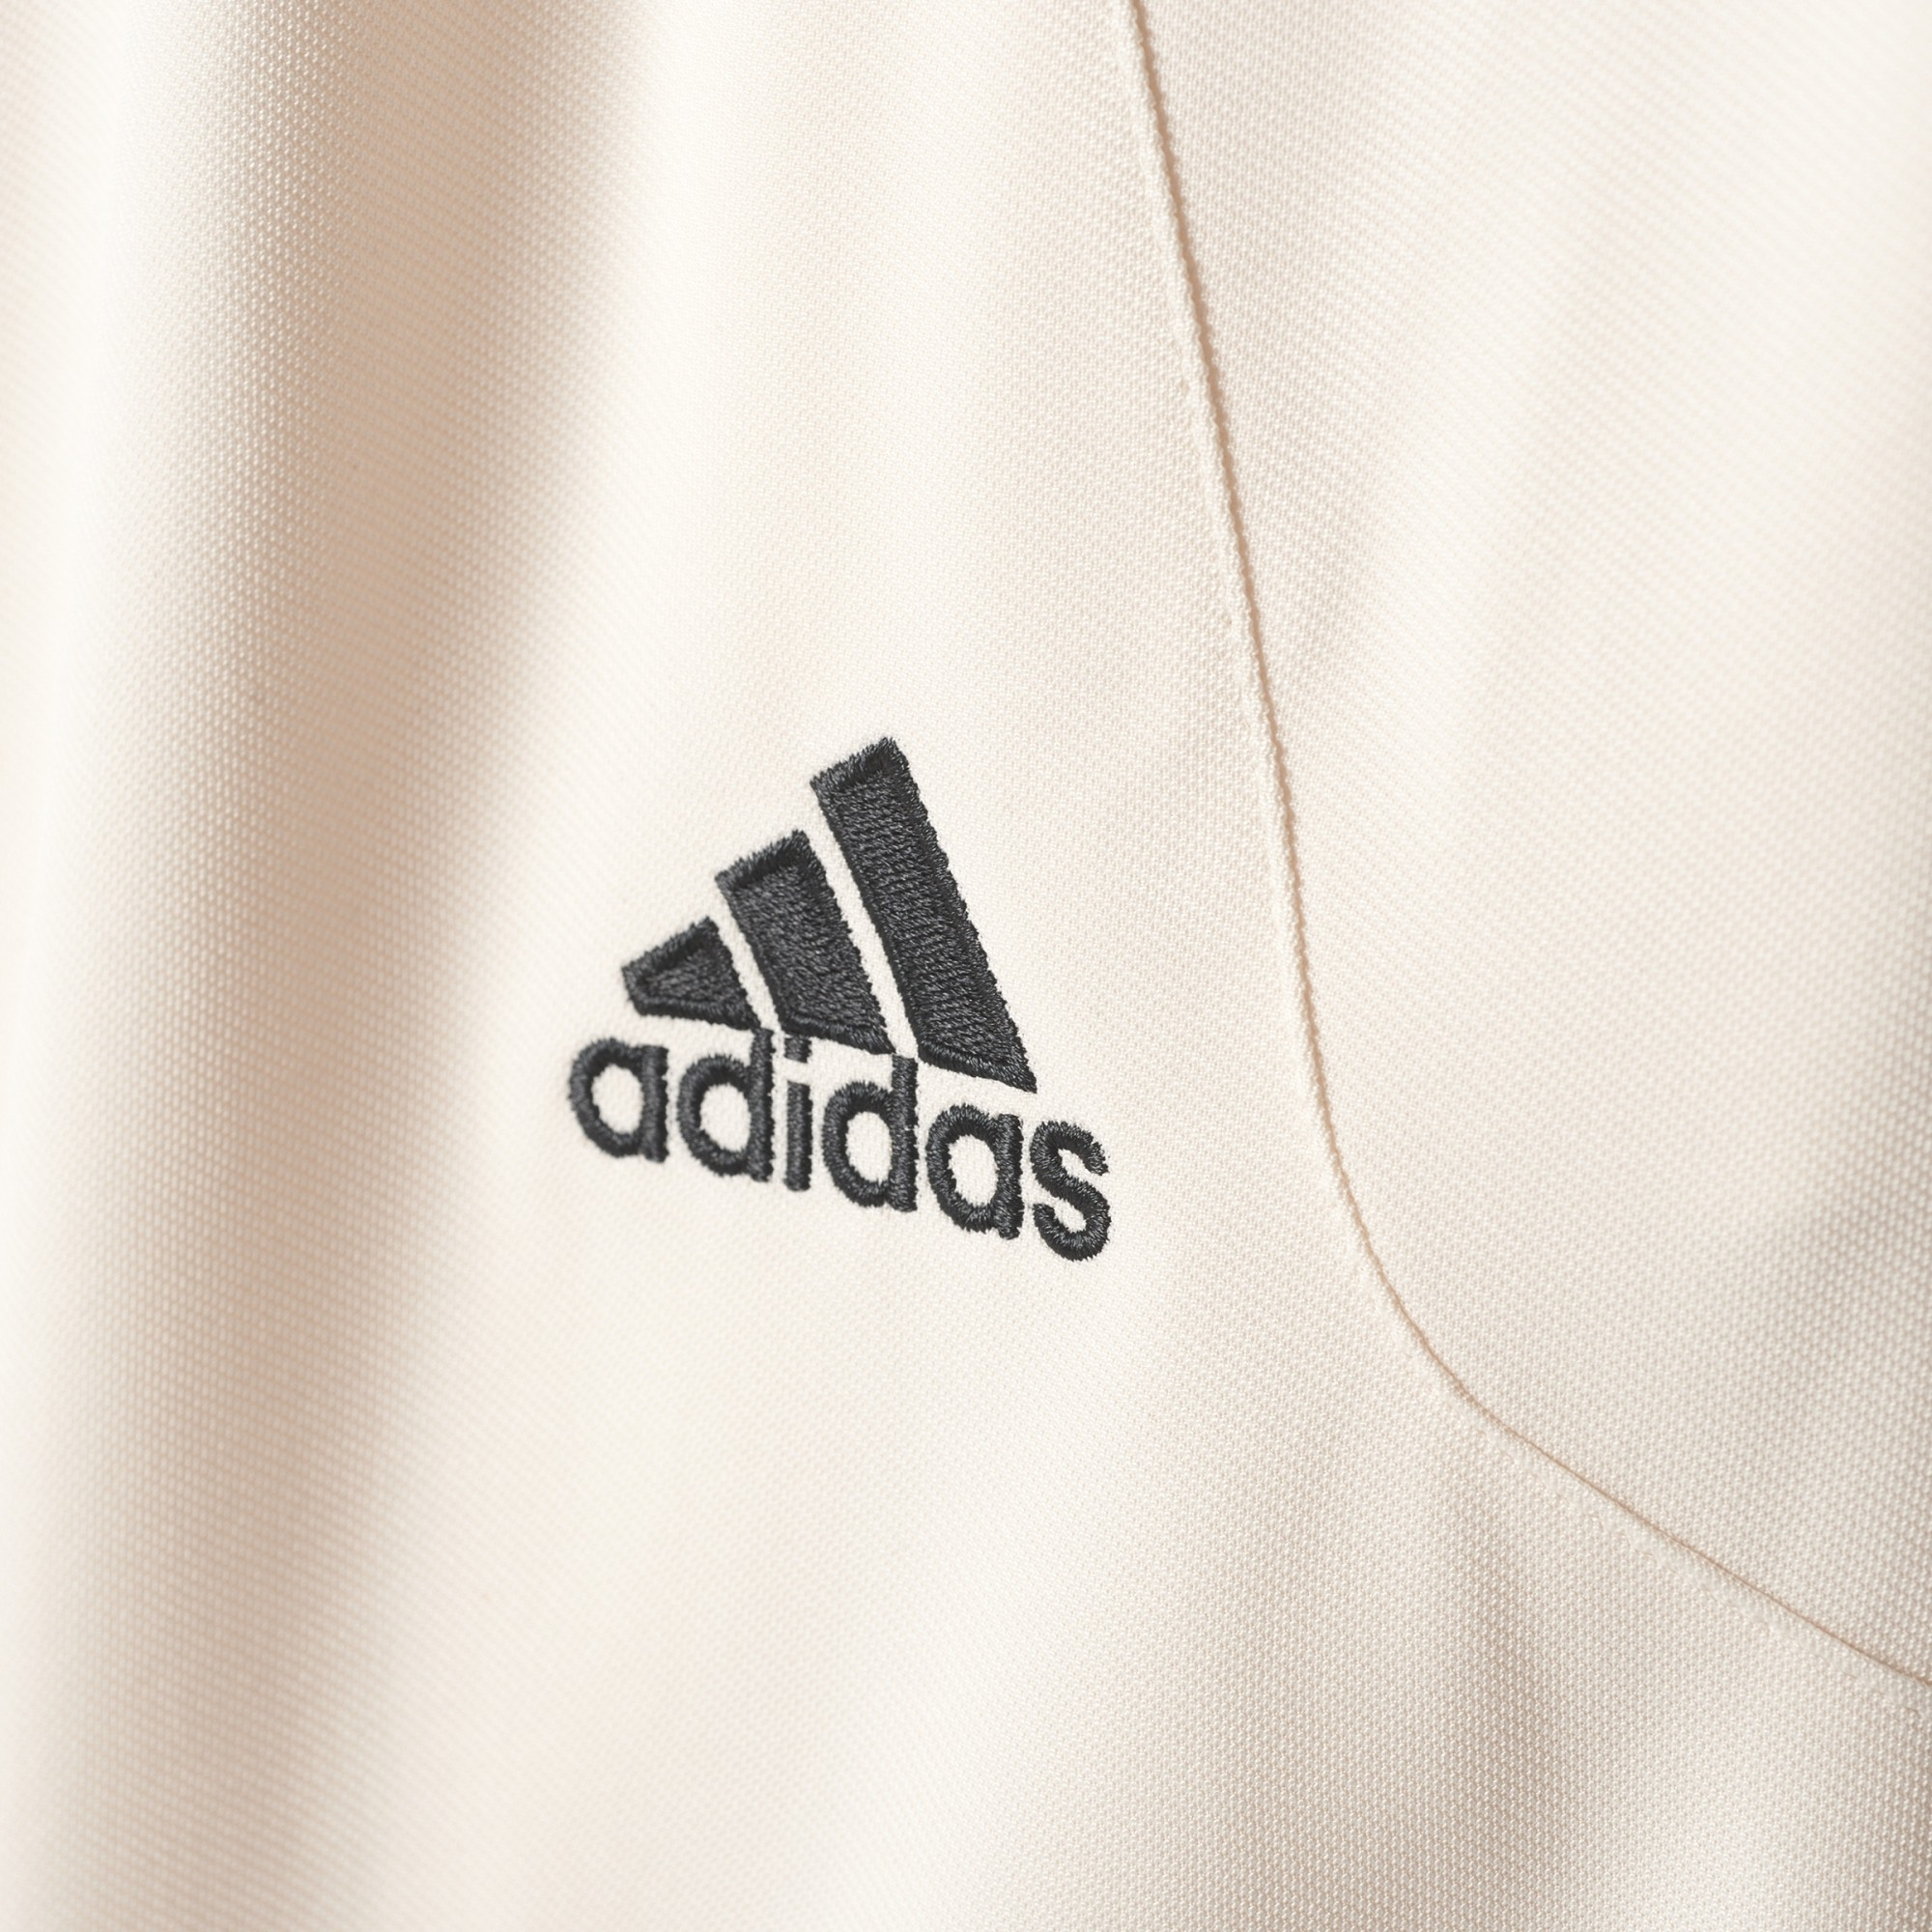 Adidas Howzat Playing Trousers